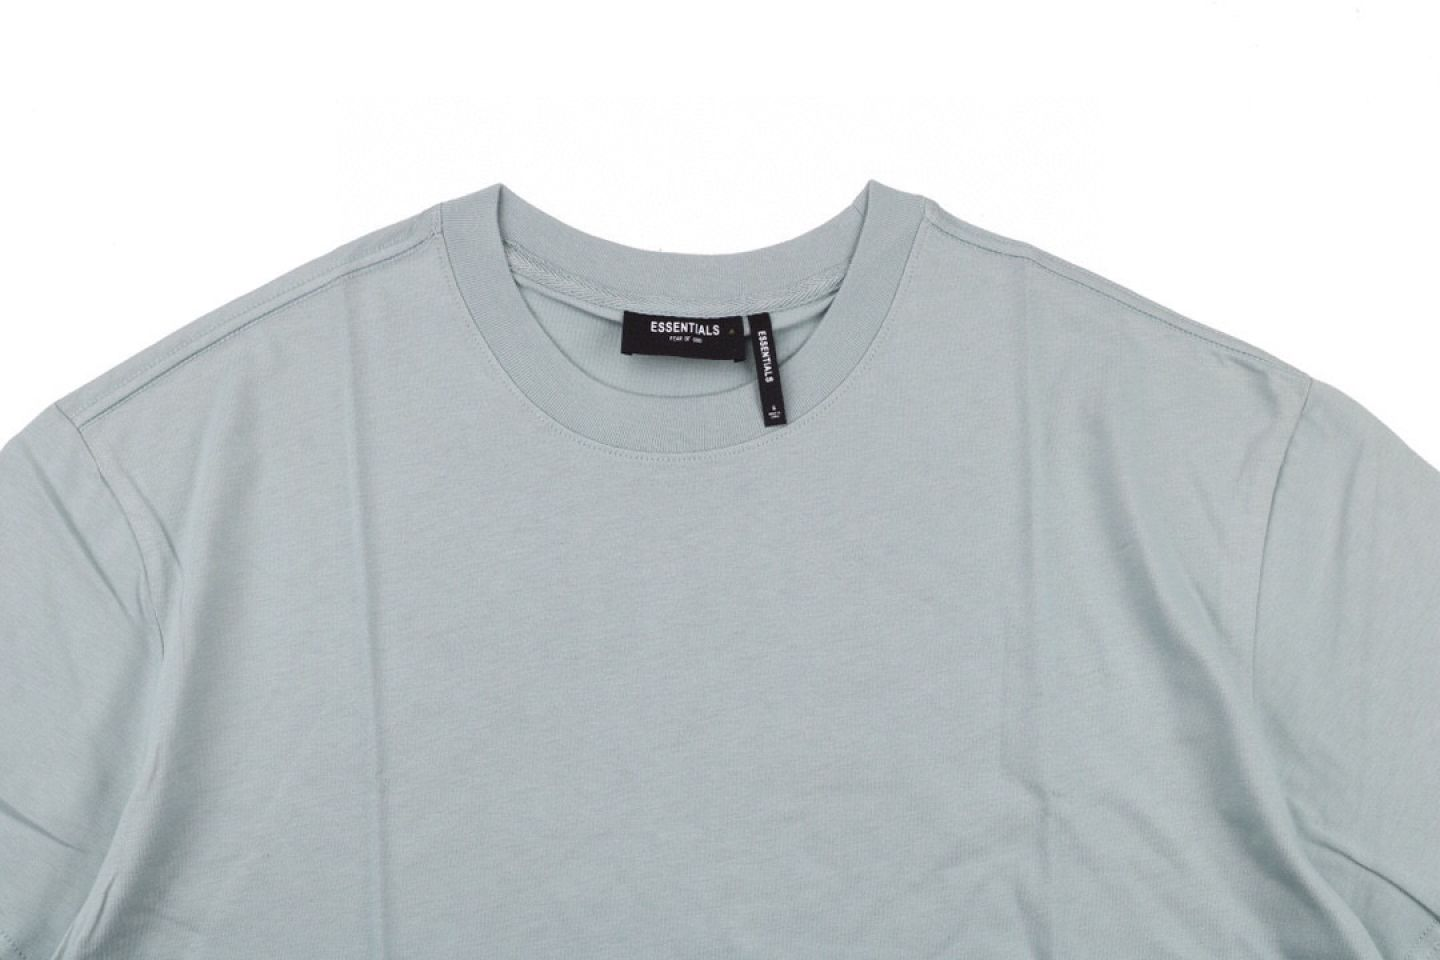 Shirt FEAR OF GOD ESSENTIALS 6 multi-line 3M reflective short-sleeved T-shirt mint 2 fear_of_god_essentials_6_multi_line_3m_reflective_short_sleeved_t_shirt_mint__2